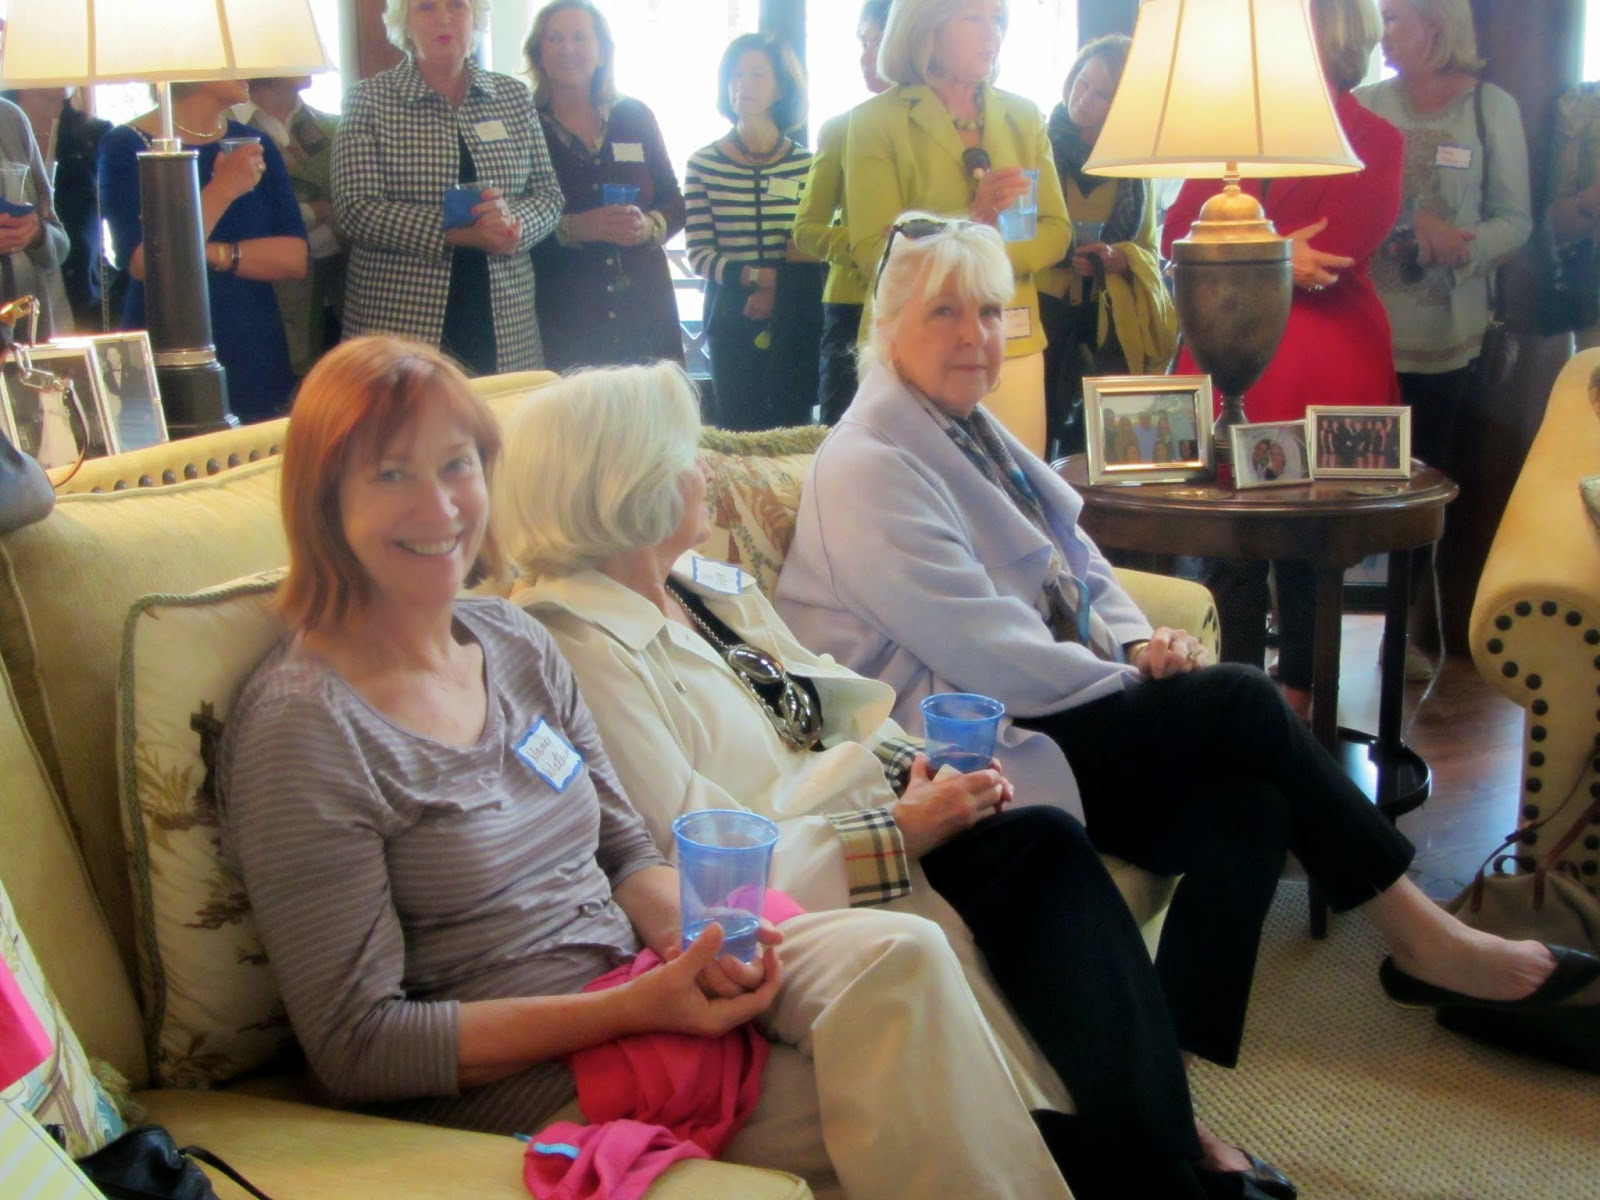 bluff springs women Learn more about bluff springs real estate discover the bluff springs median home price, income, schools, and more.